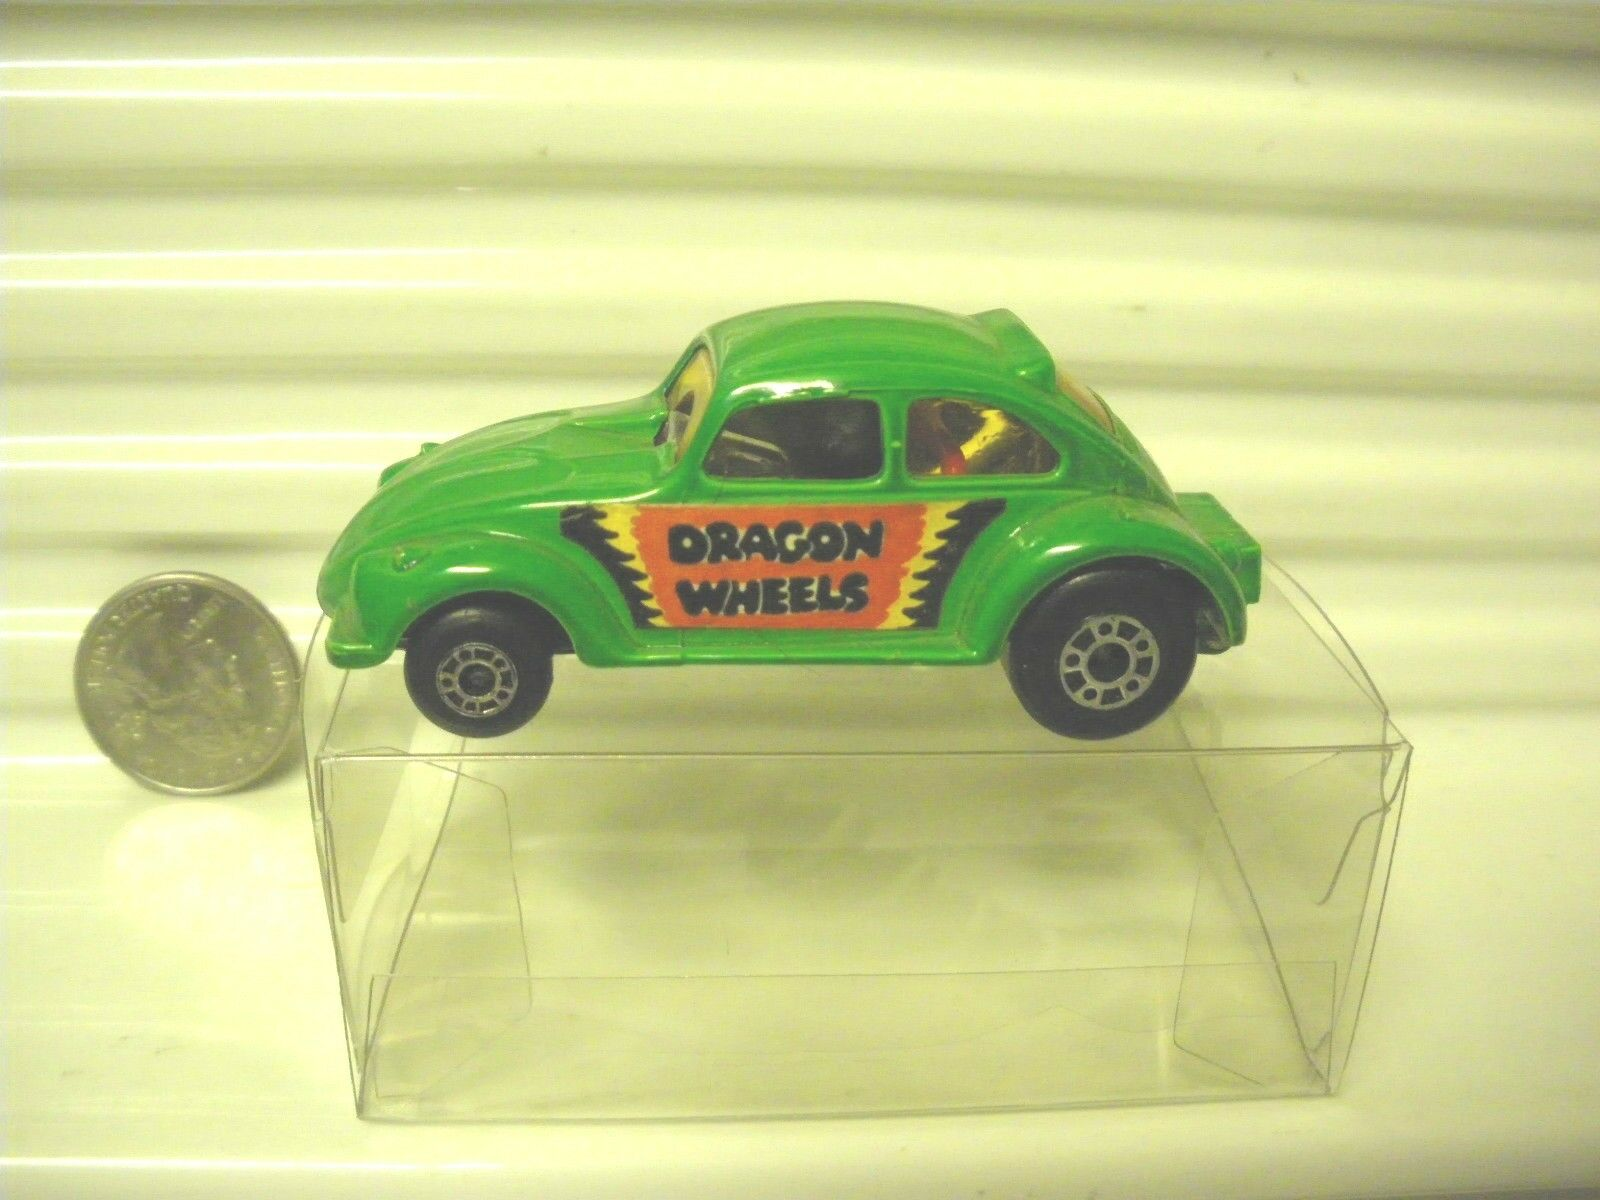 LESNEY MATCHBOX 1972 MB43B Grün DRAGON WHEELS VW w4 DOT DASH WHEELS MINT PL BX